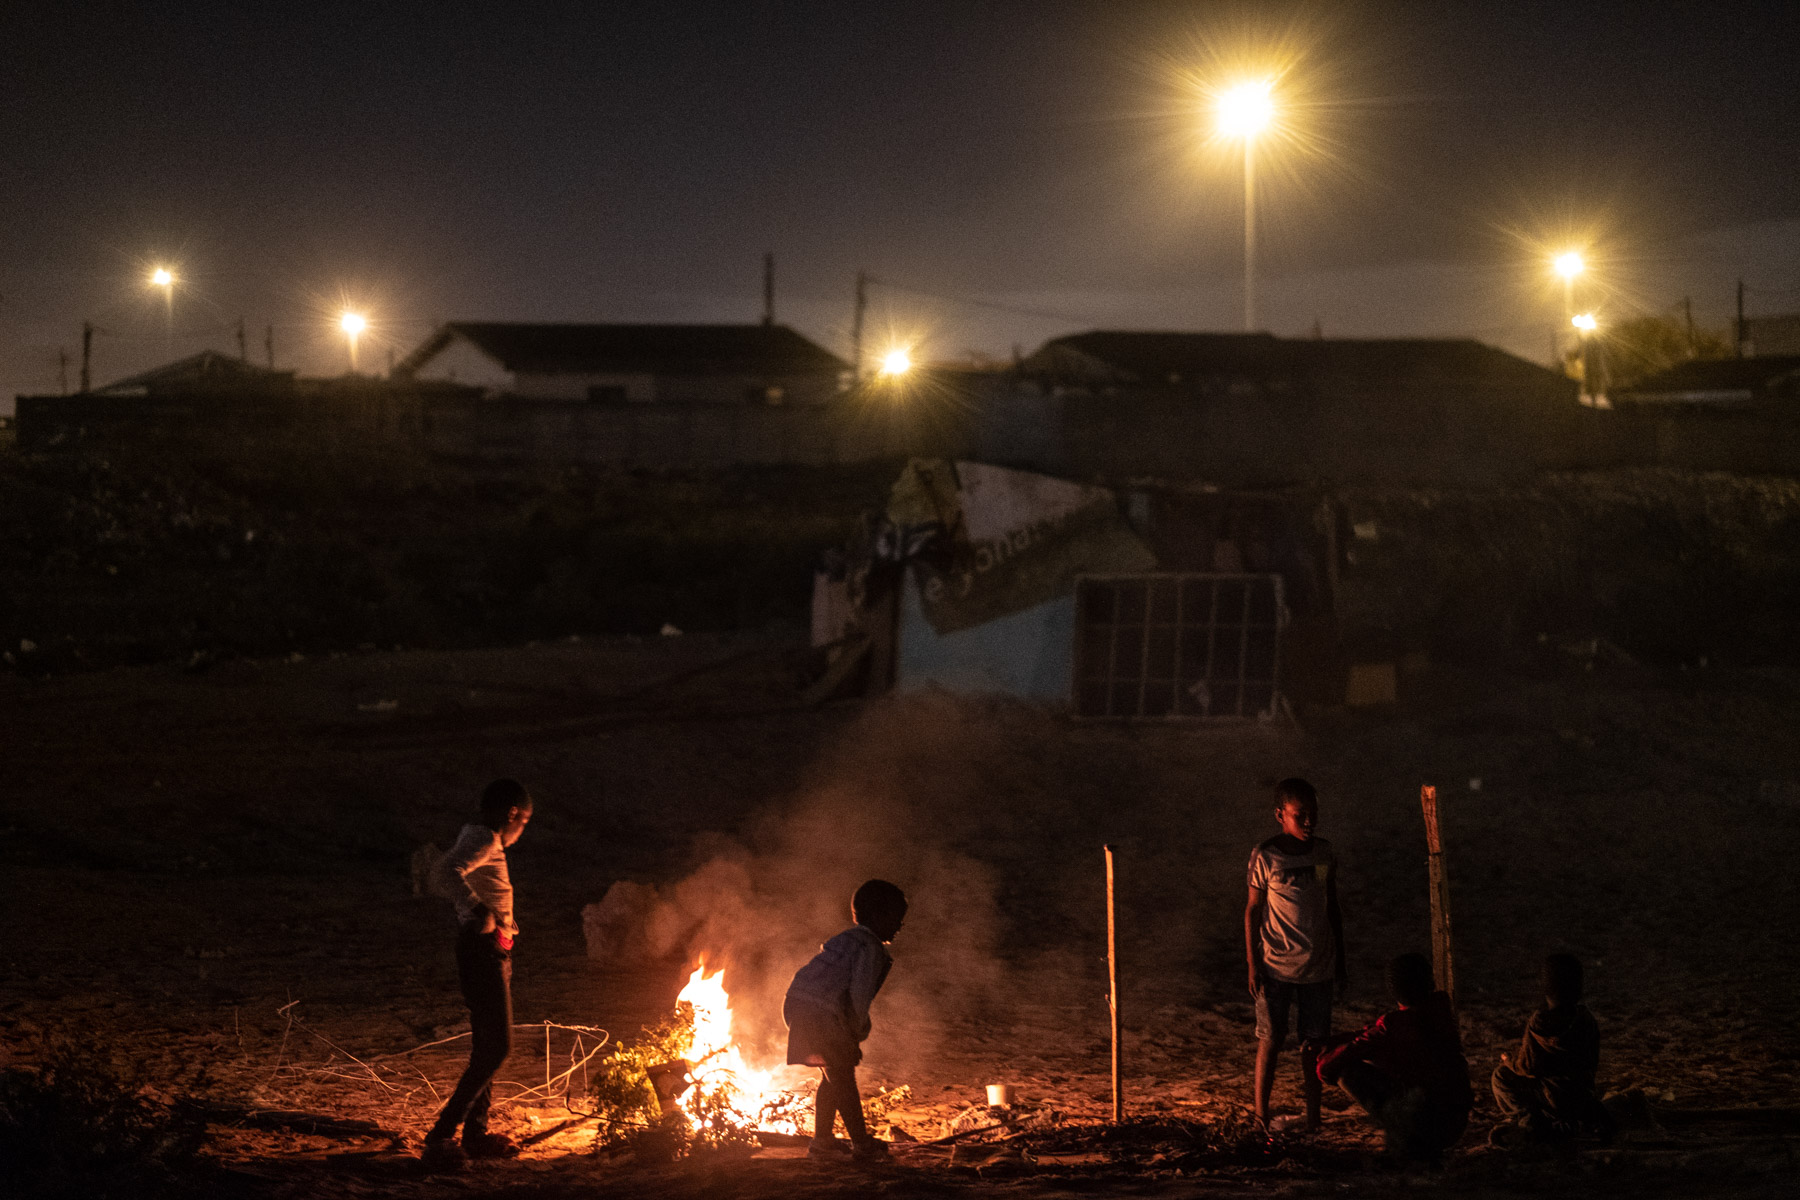 16 April 2020: Children who had been living in the demolished shacks play around a fire at night.